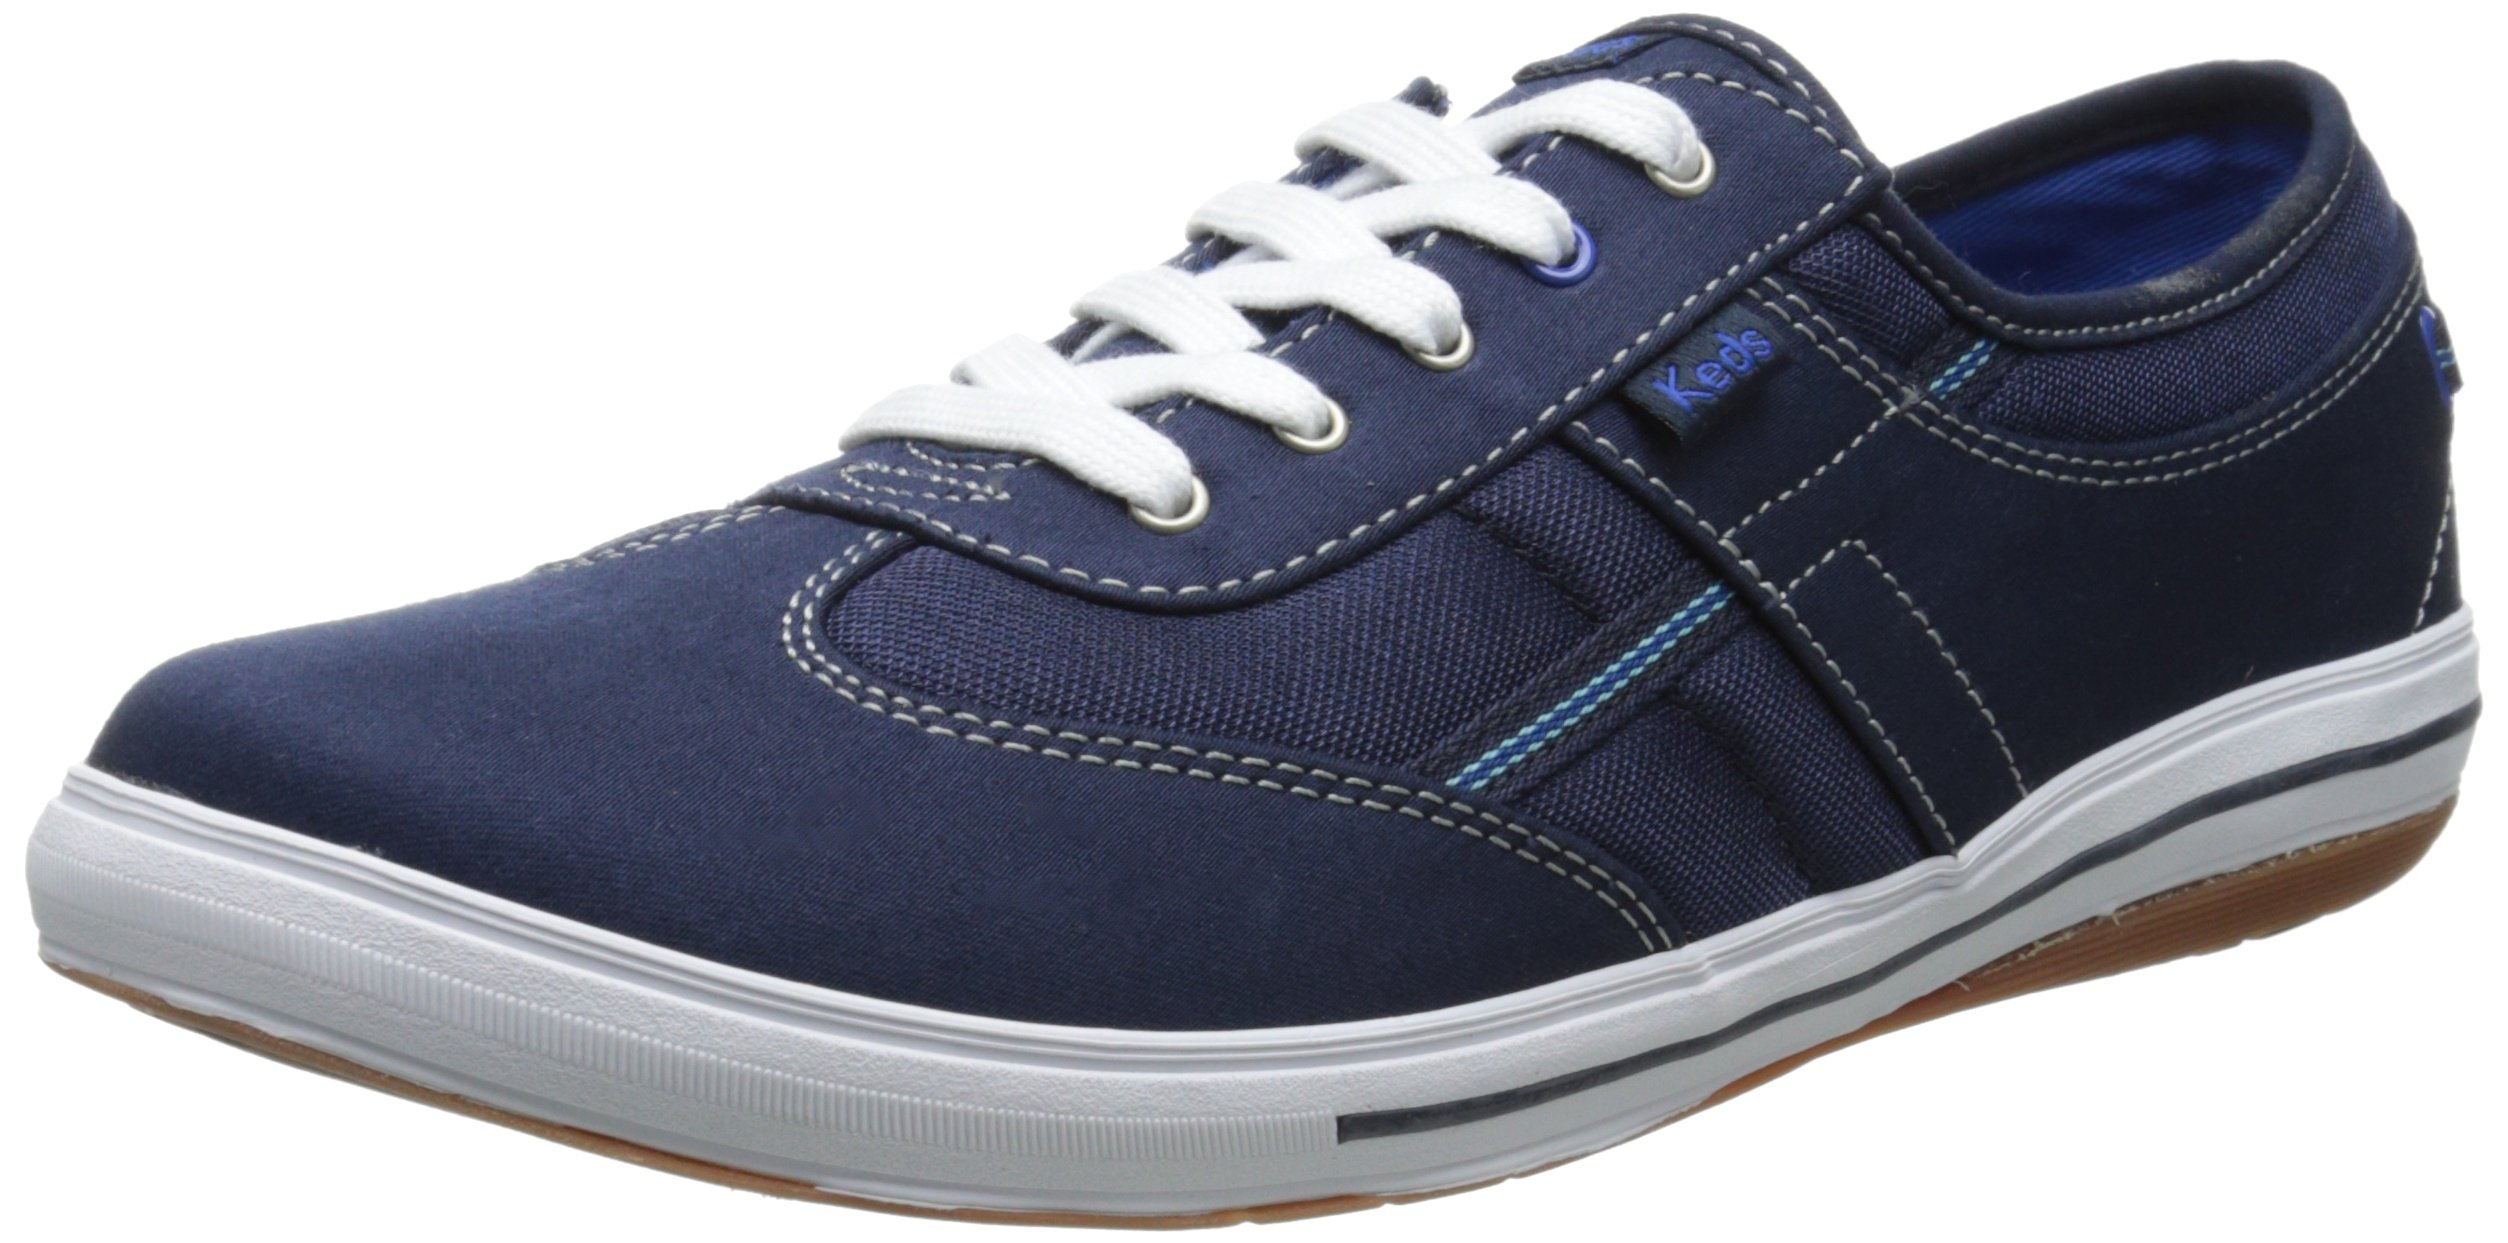 Keds Women's Craze T-Toe Twill Sneaker, Peacoat Navy, 10 M US by Keds (Image #1)